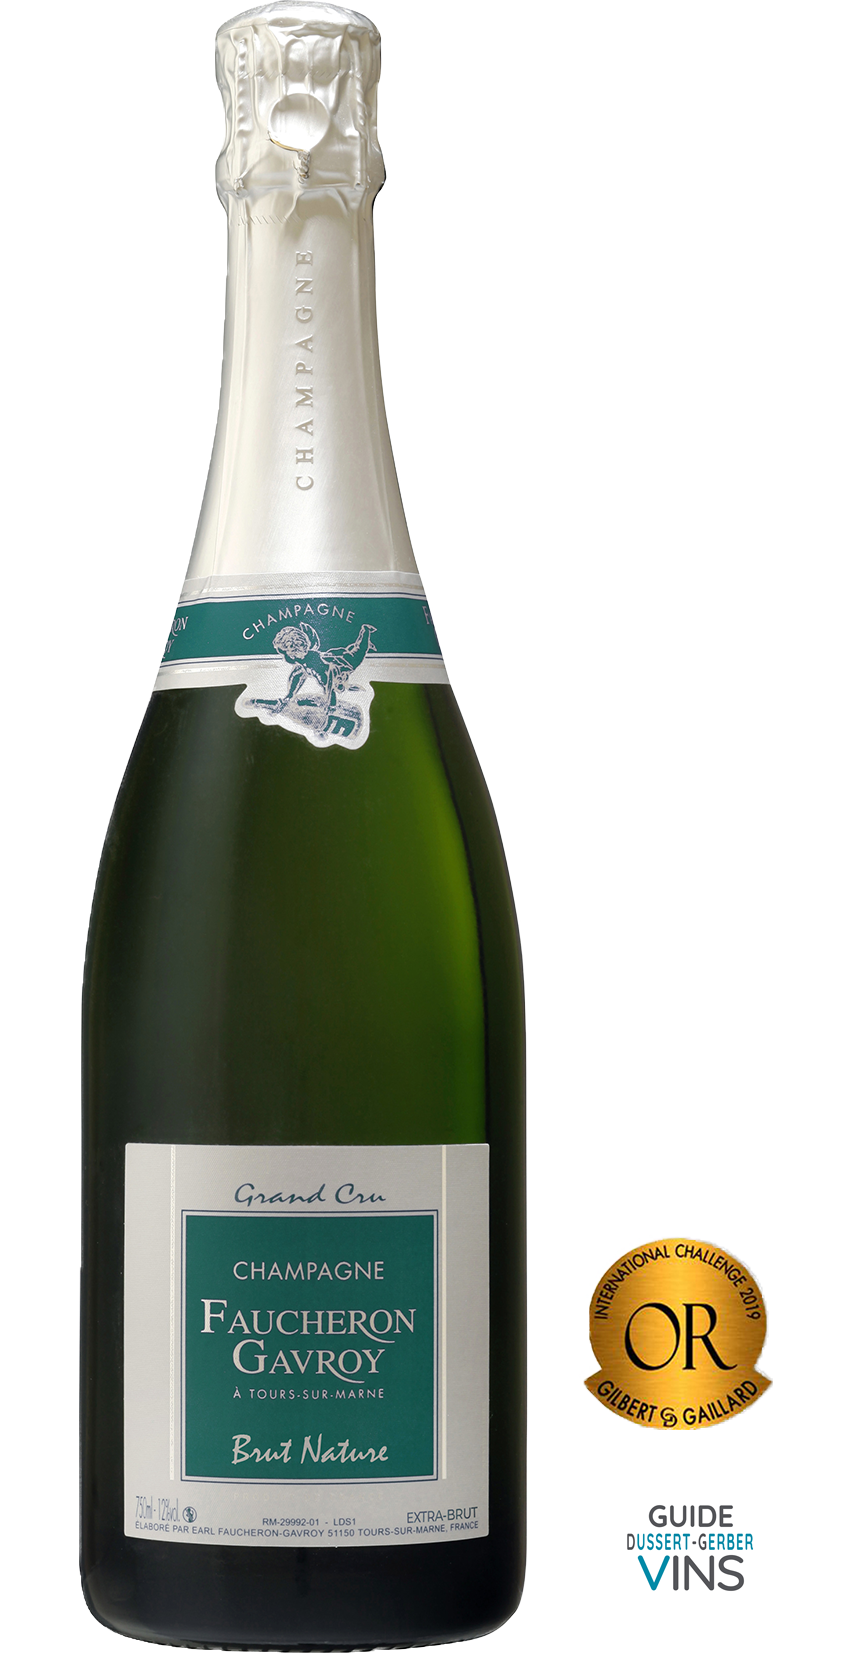 Champagne Faucheron-Gavroy : CUVÉE NATURE EXTRA BRUT